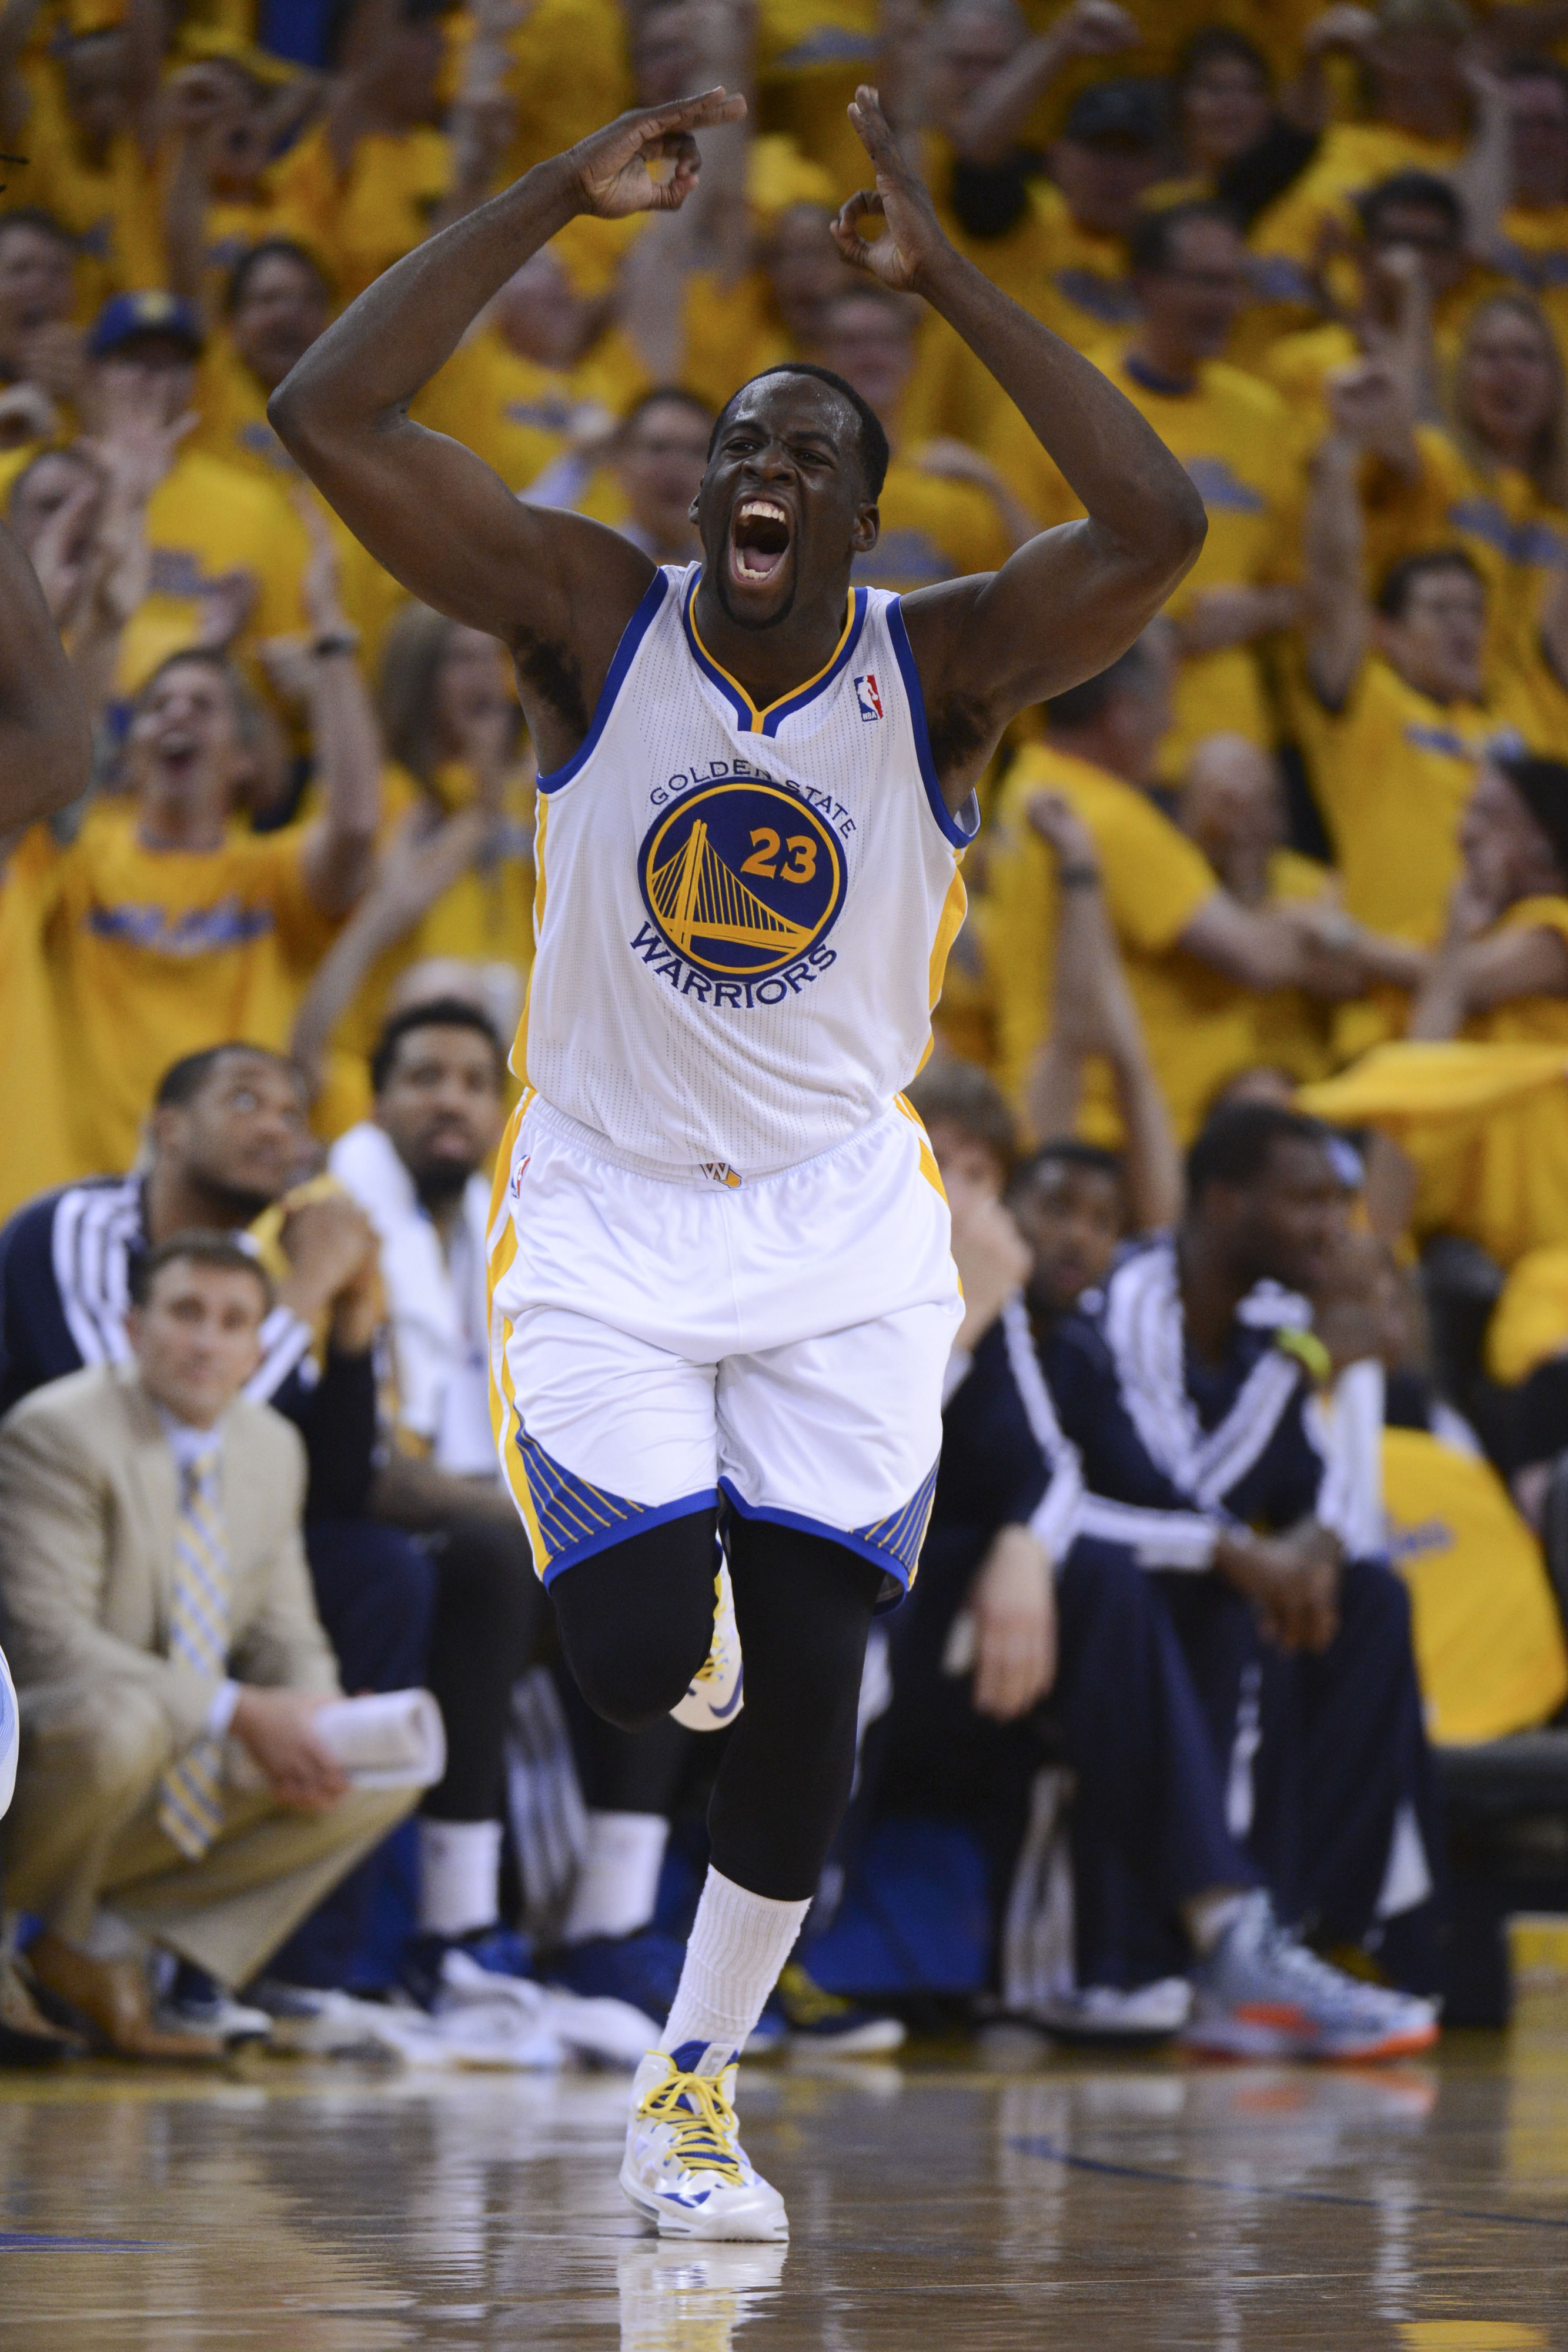 Draymond's breakout game was crucial to victory!